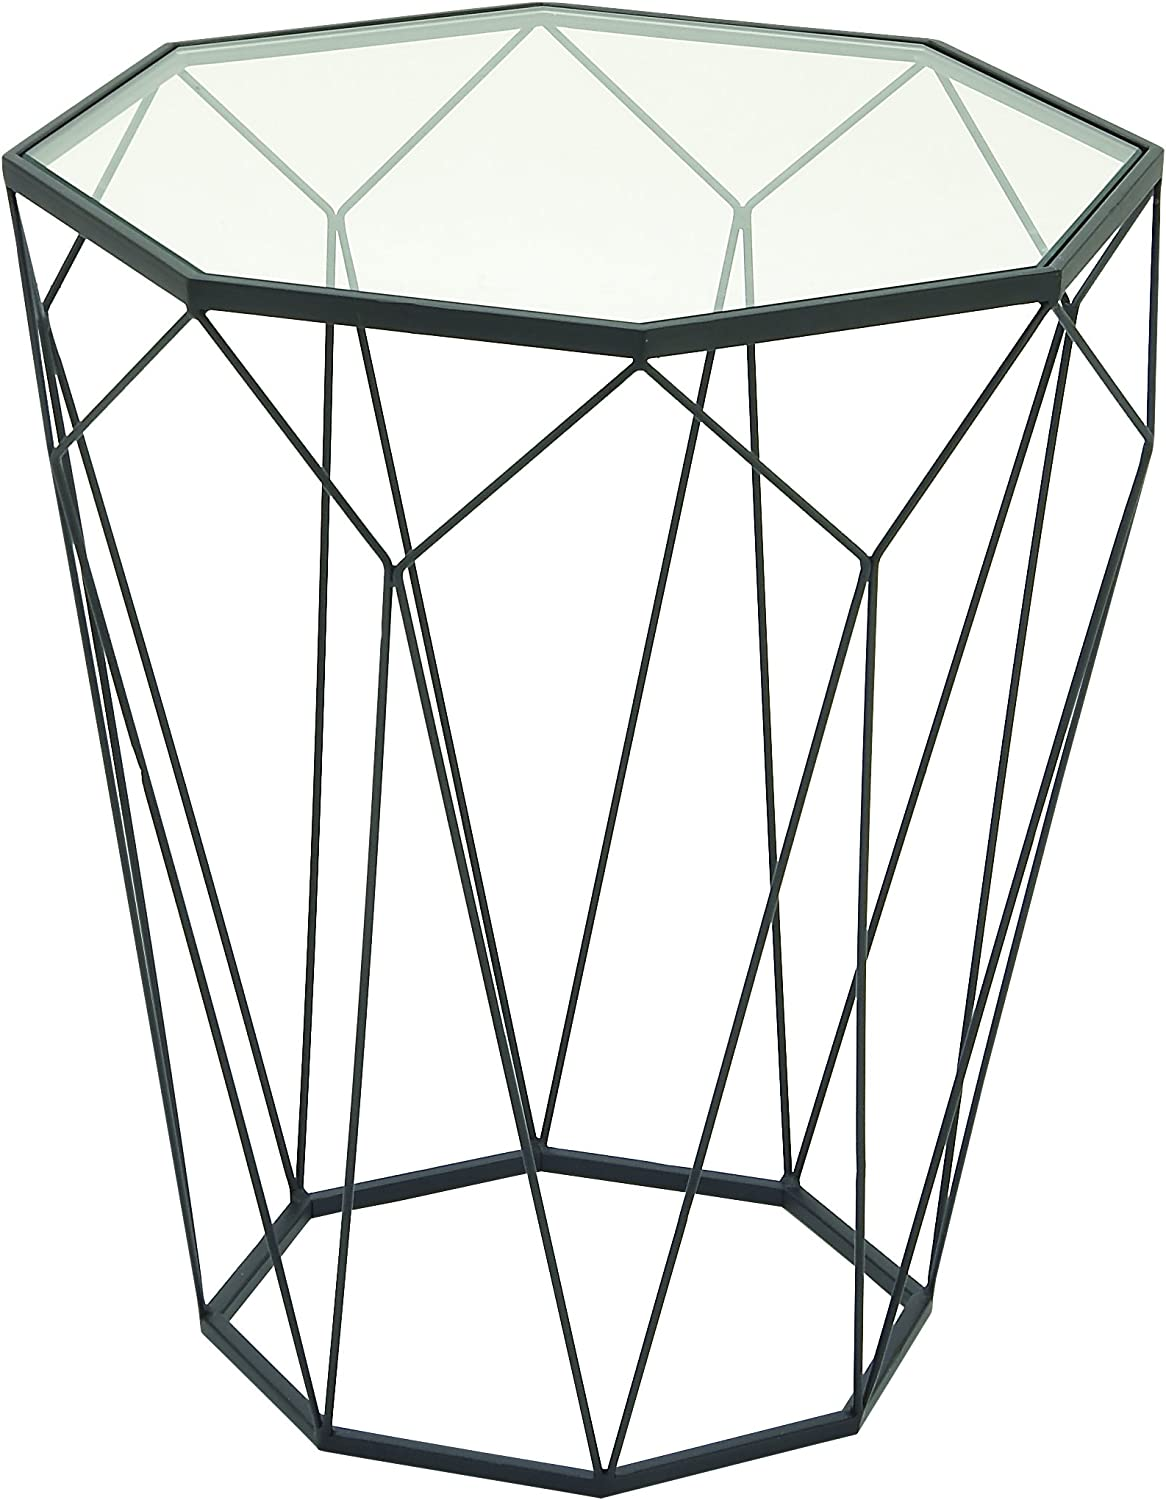 Deco 79 65559 Metal Glass Accent Table, 20  x 22